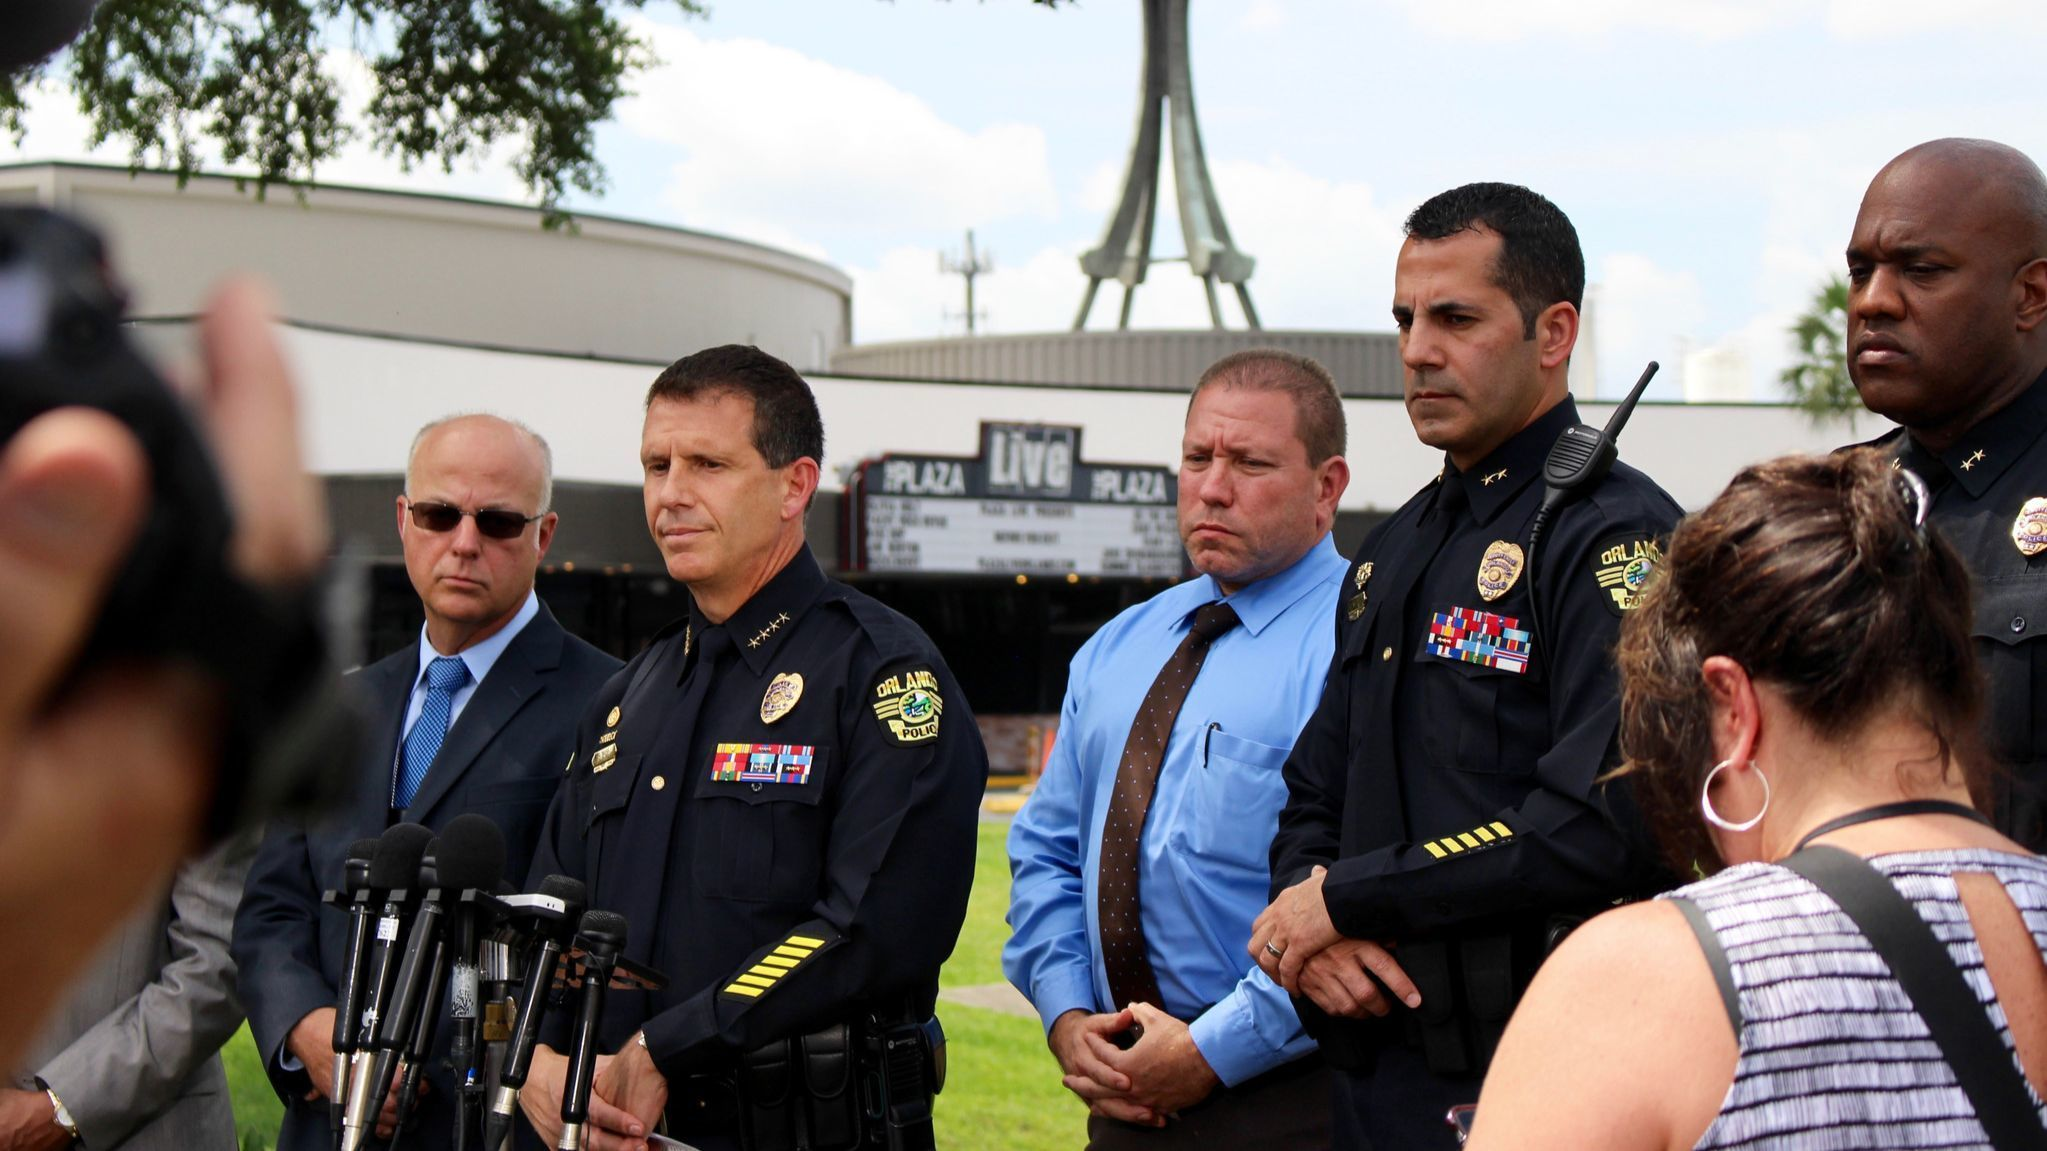 Orlando police hold press conference after singer Christina Grimmie murder